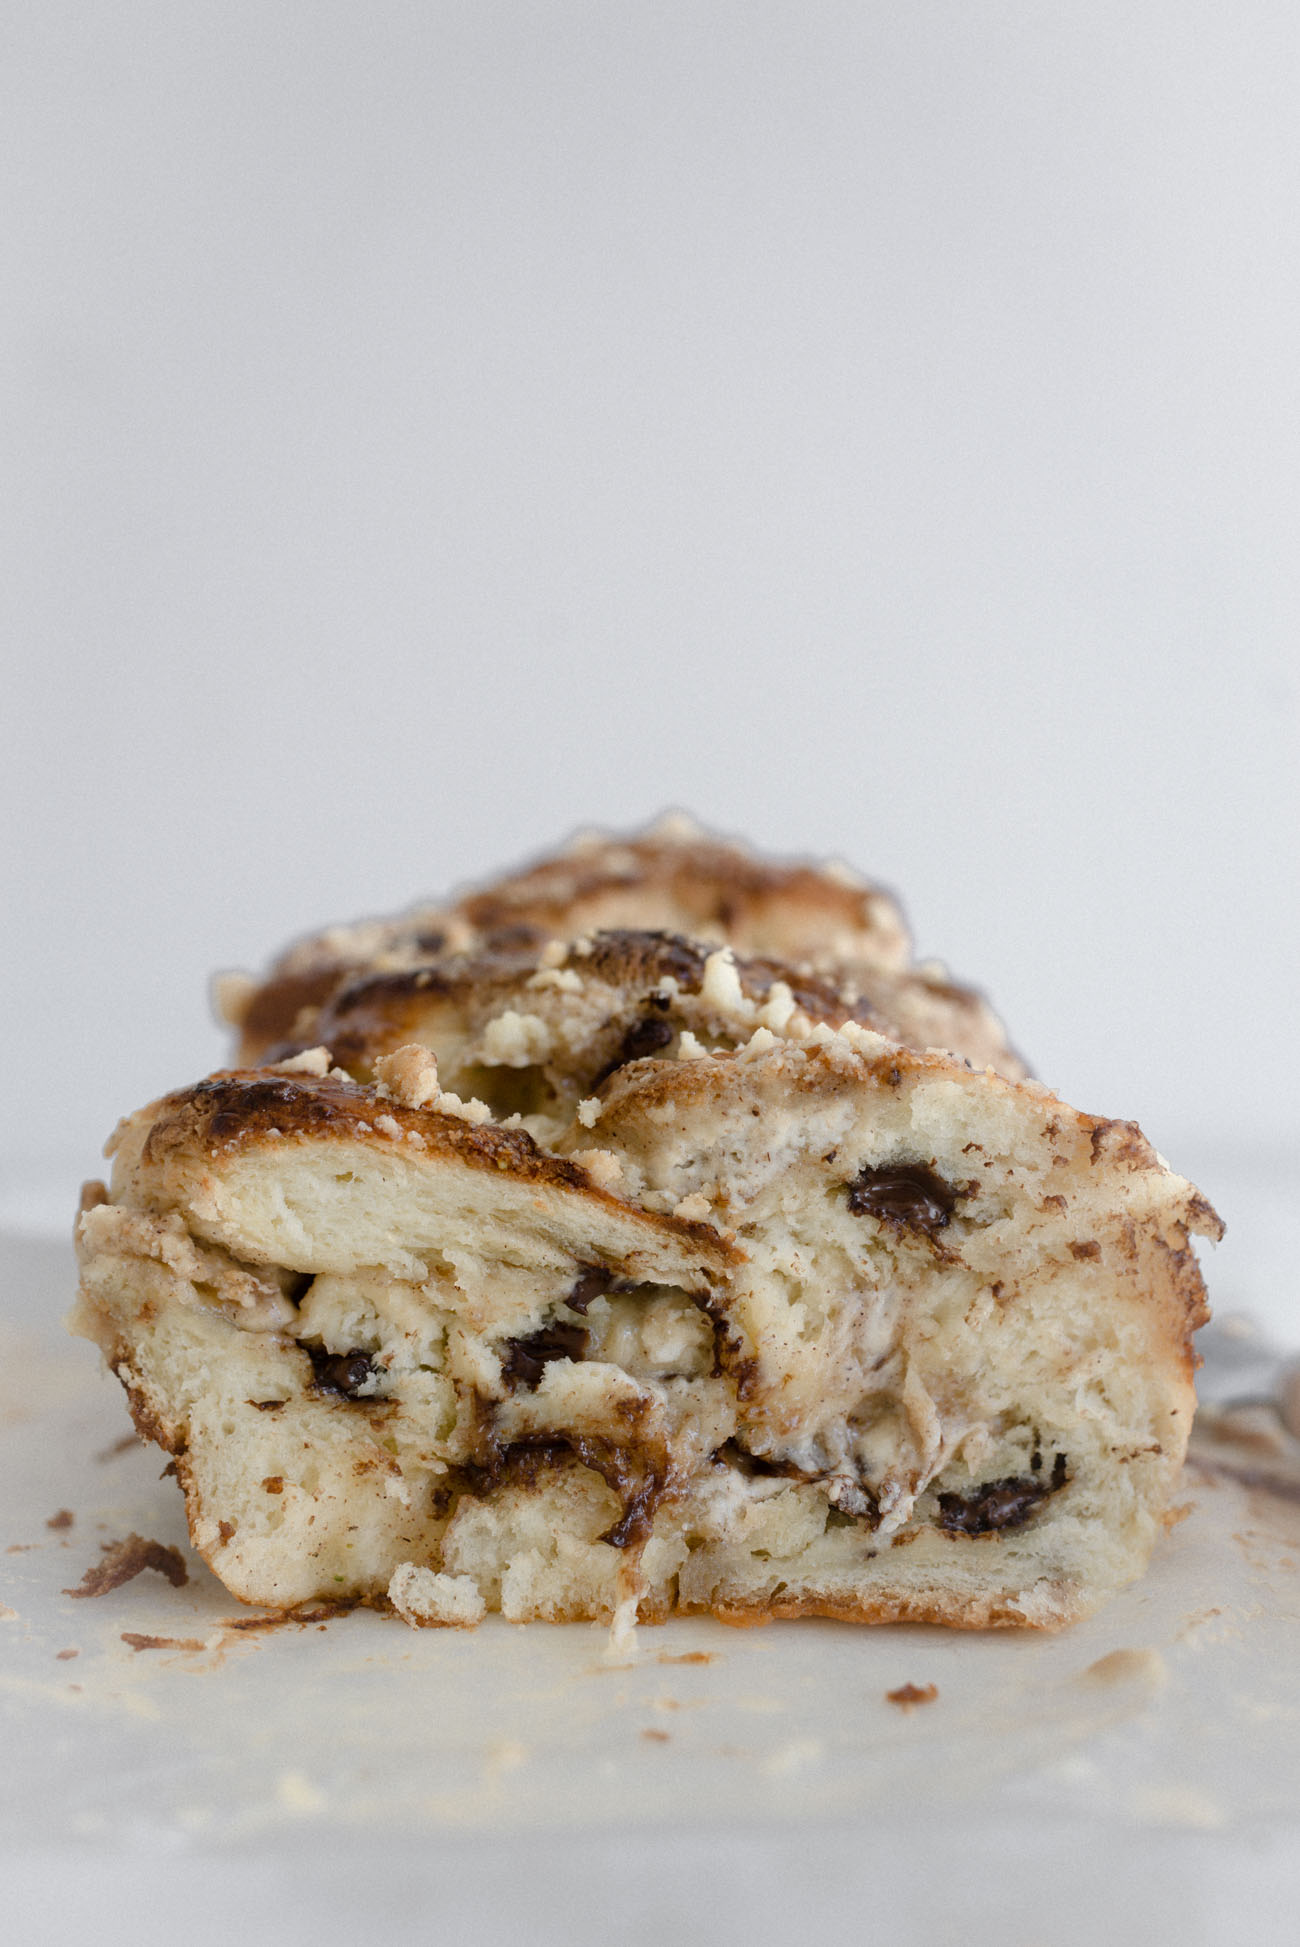 Spiced-Chocolate-and-Halvah-Babka-3.jpg